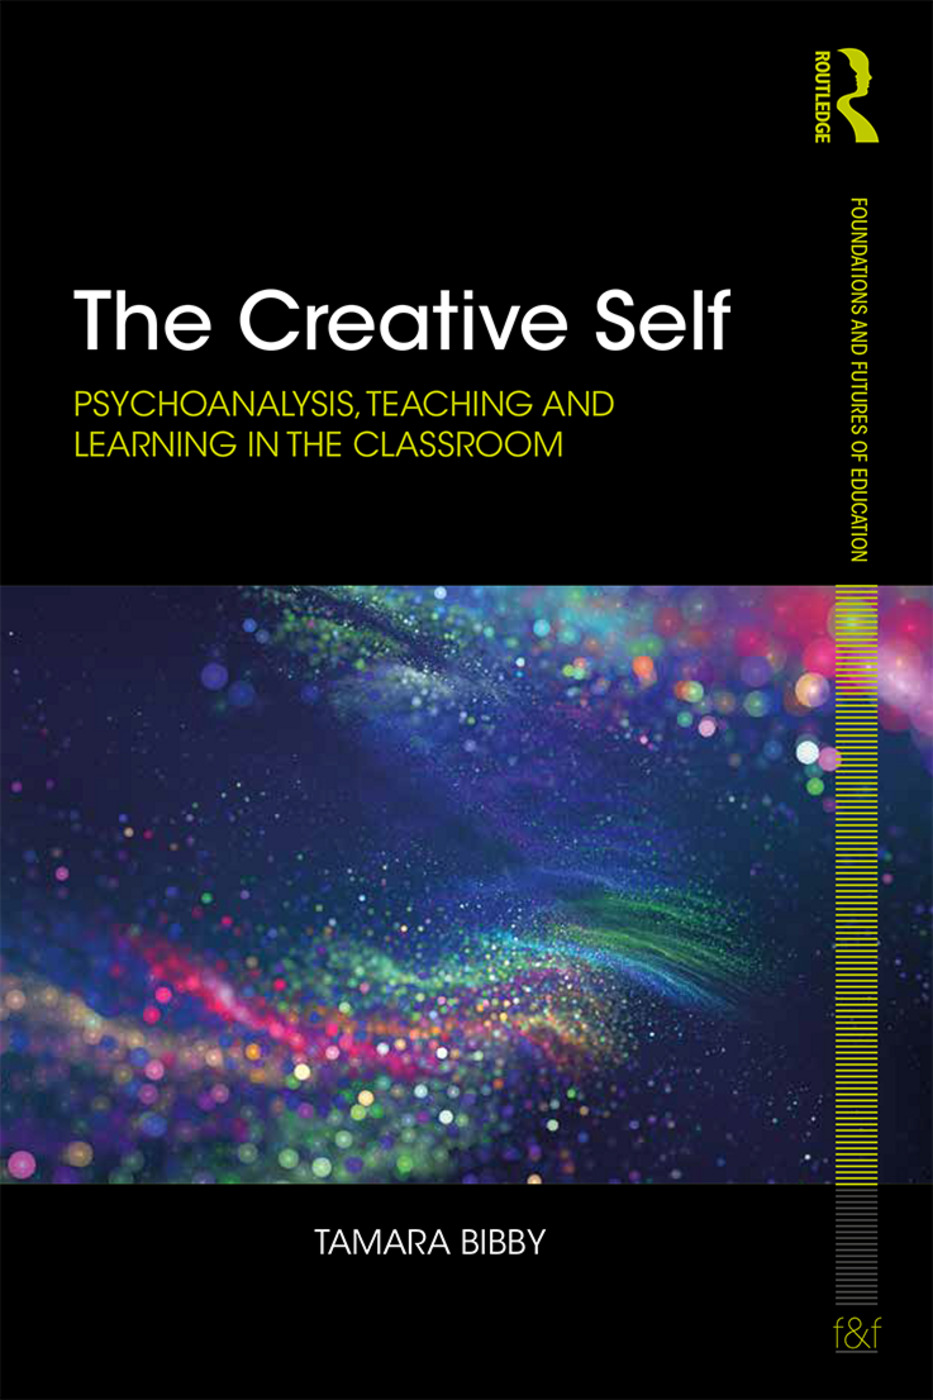 The Creative Self: Psychoanalysis, Teaching and Learning in the Classroom book cover